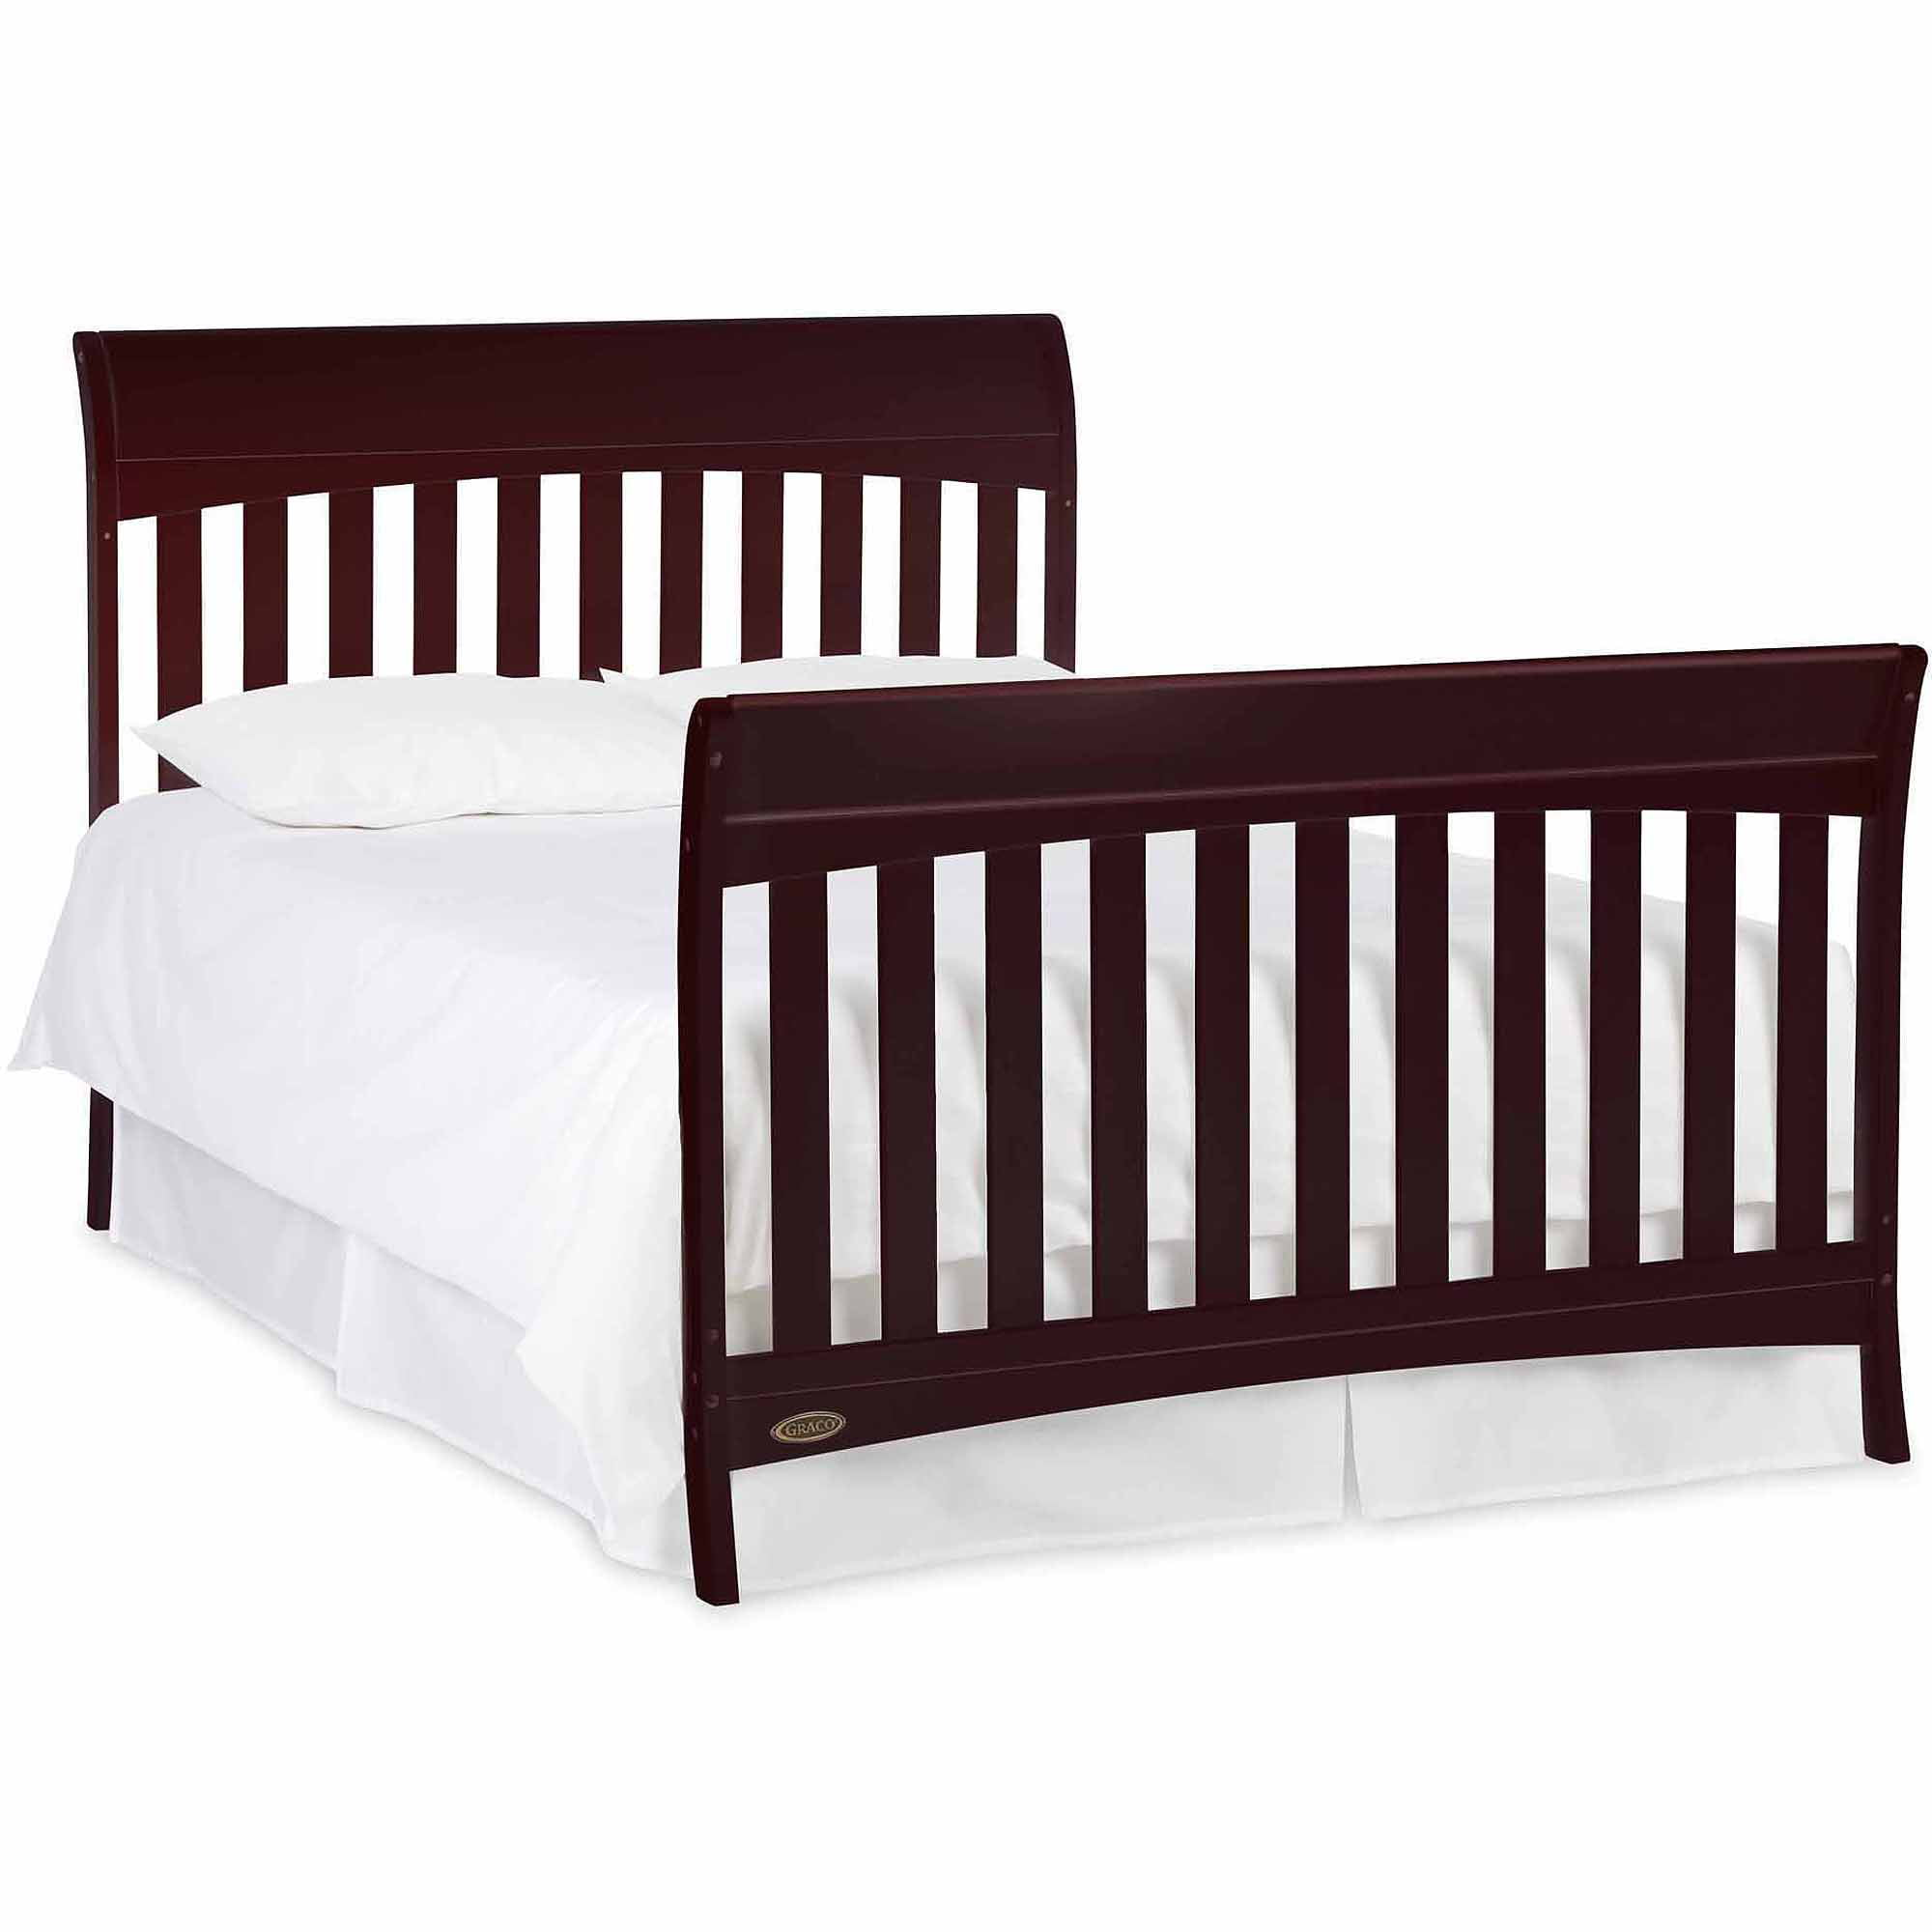 larger bebe dp com suite riley espresso amazon into in view convertible bed turns crib